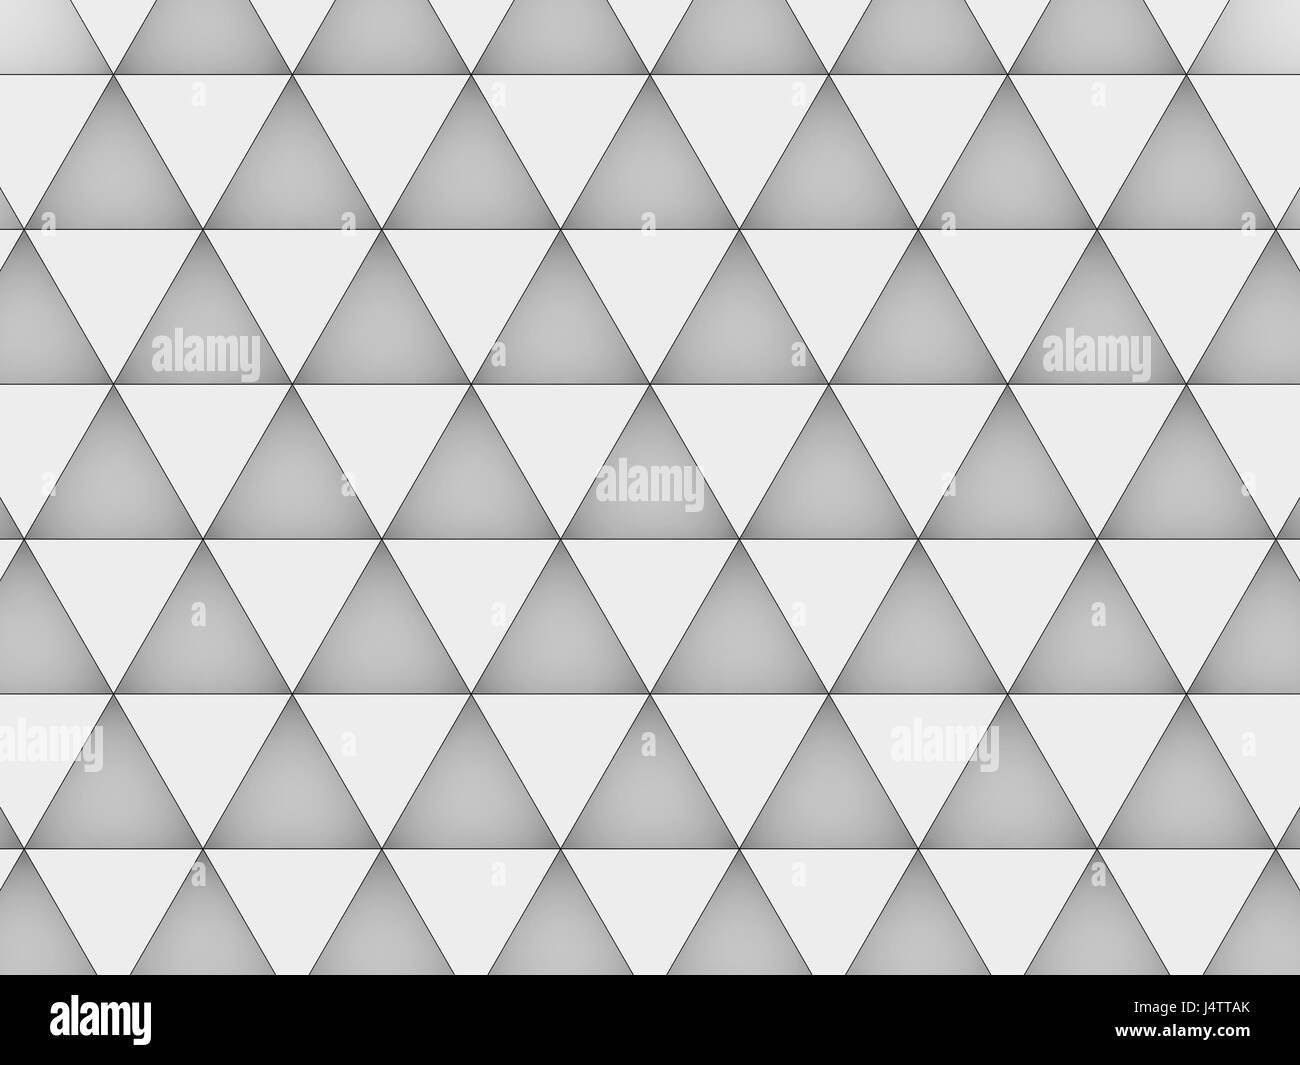 Equilateral Triangles Stock Photos & Equilateral Triangles